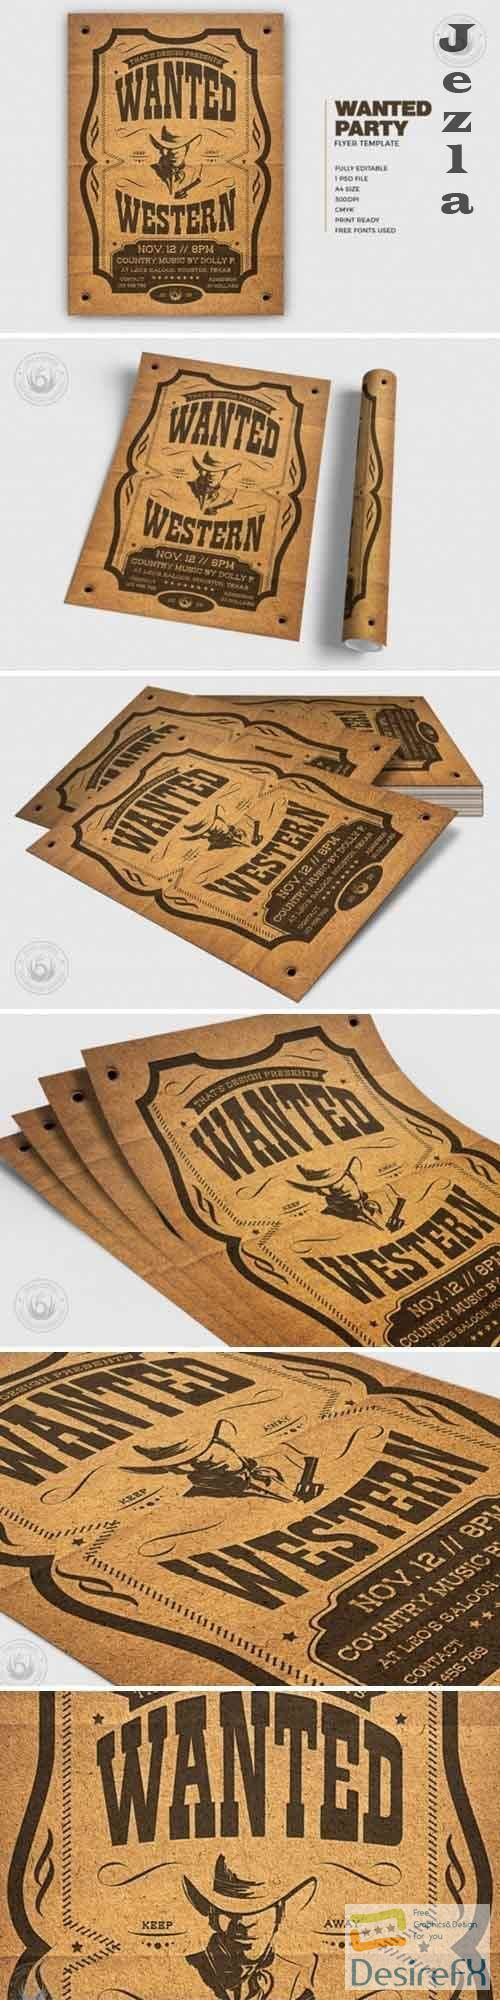 Wanted Western Party Flyer V2 - 5033785